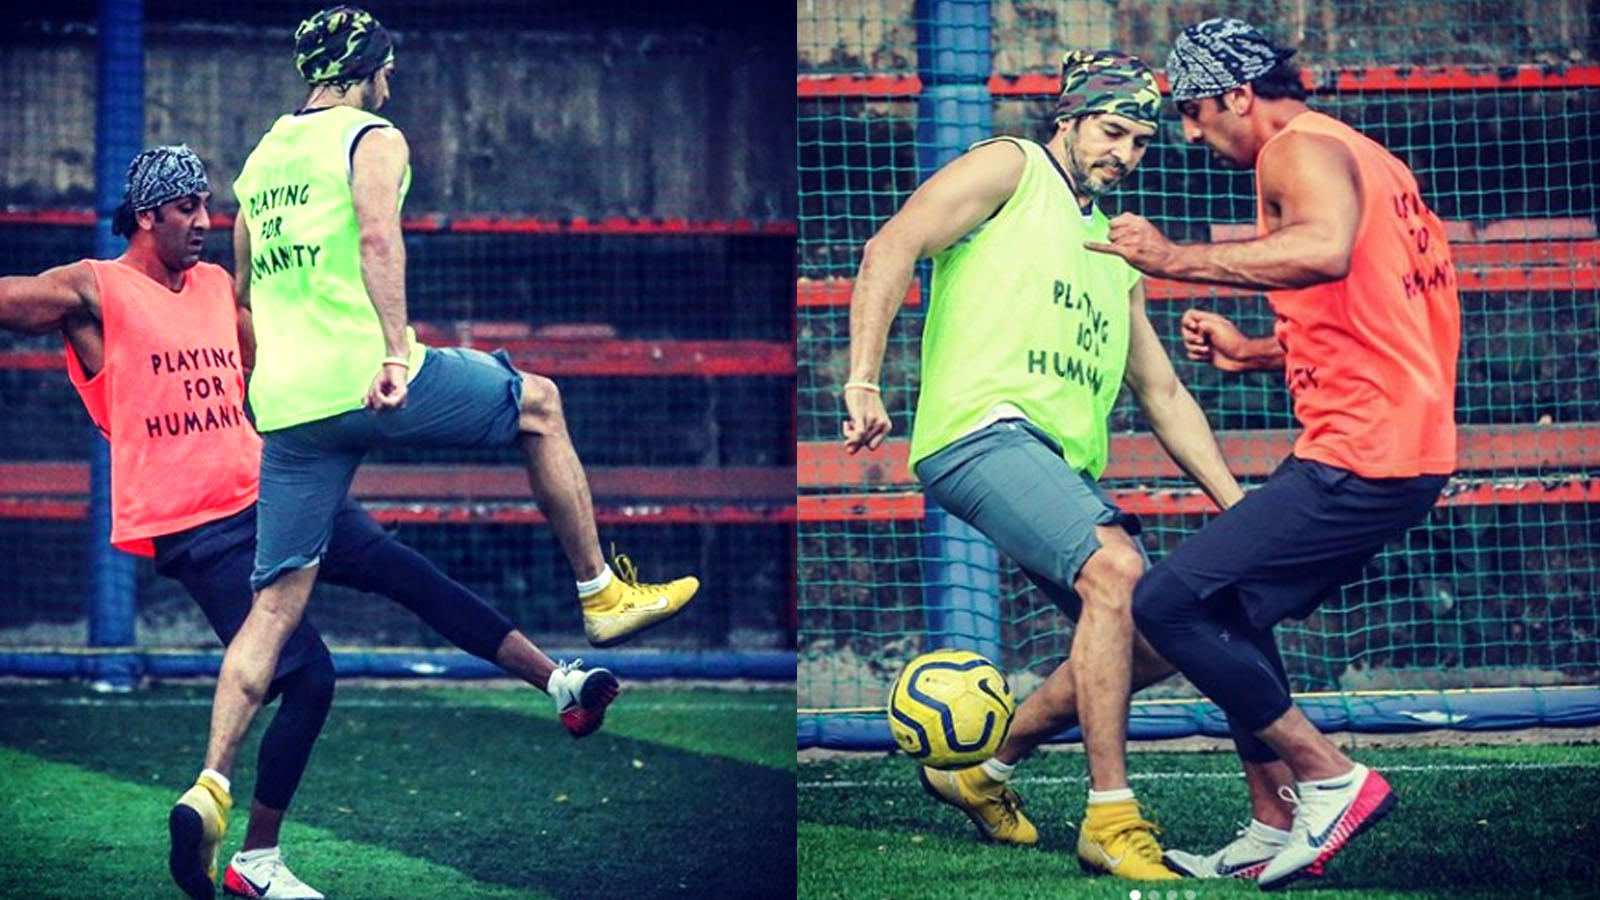 ranbir-kapoor-and-dino-moreas-football-dance-goes-viral-over-the-internet